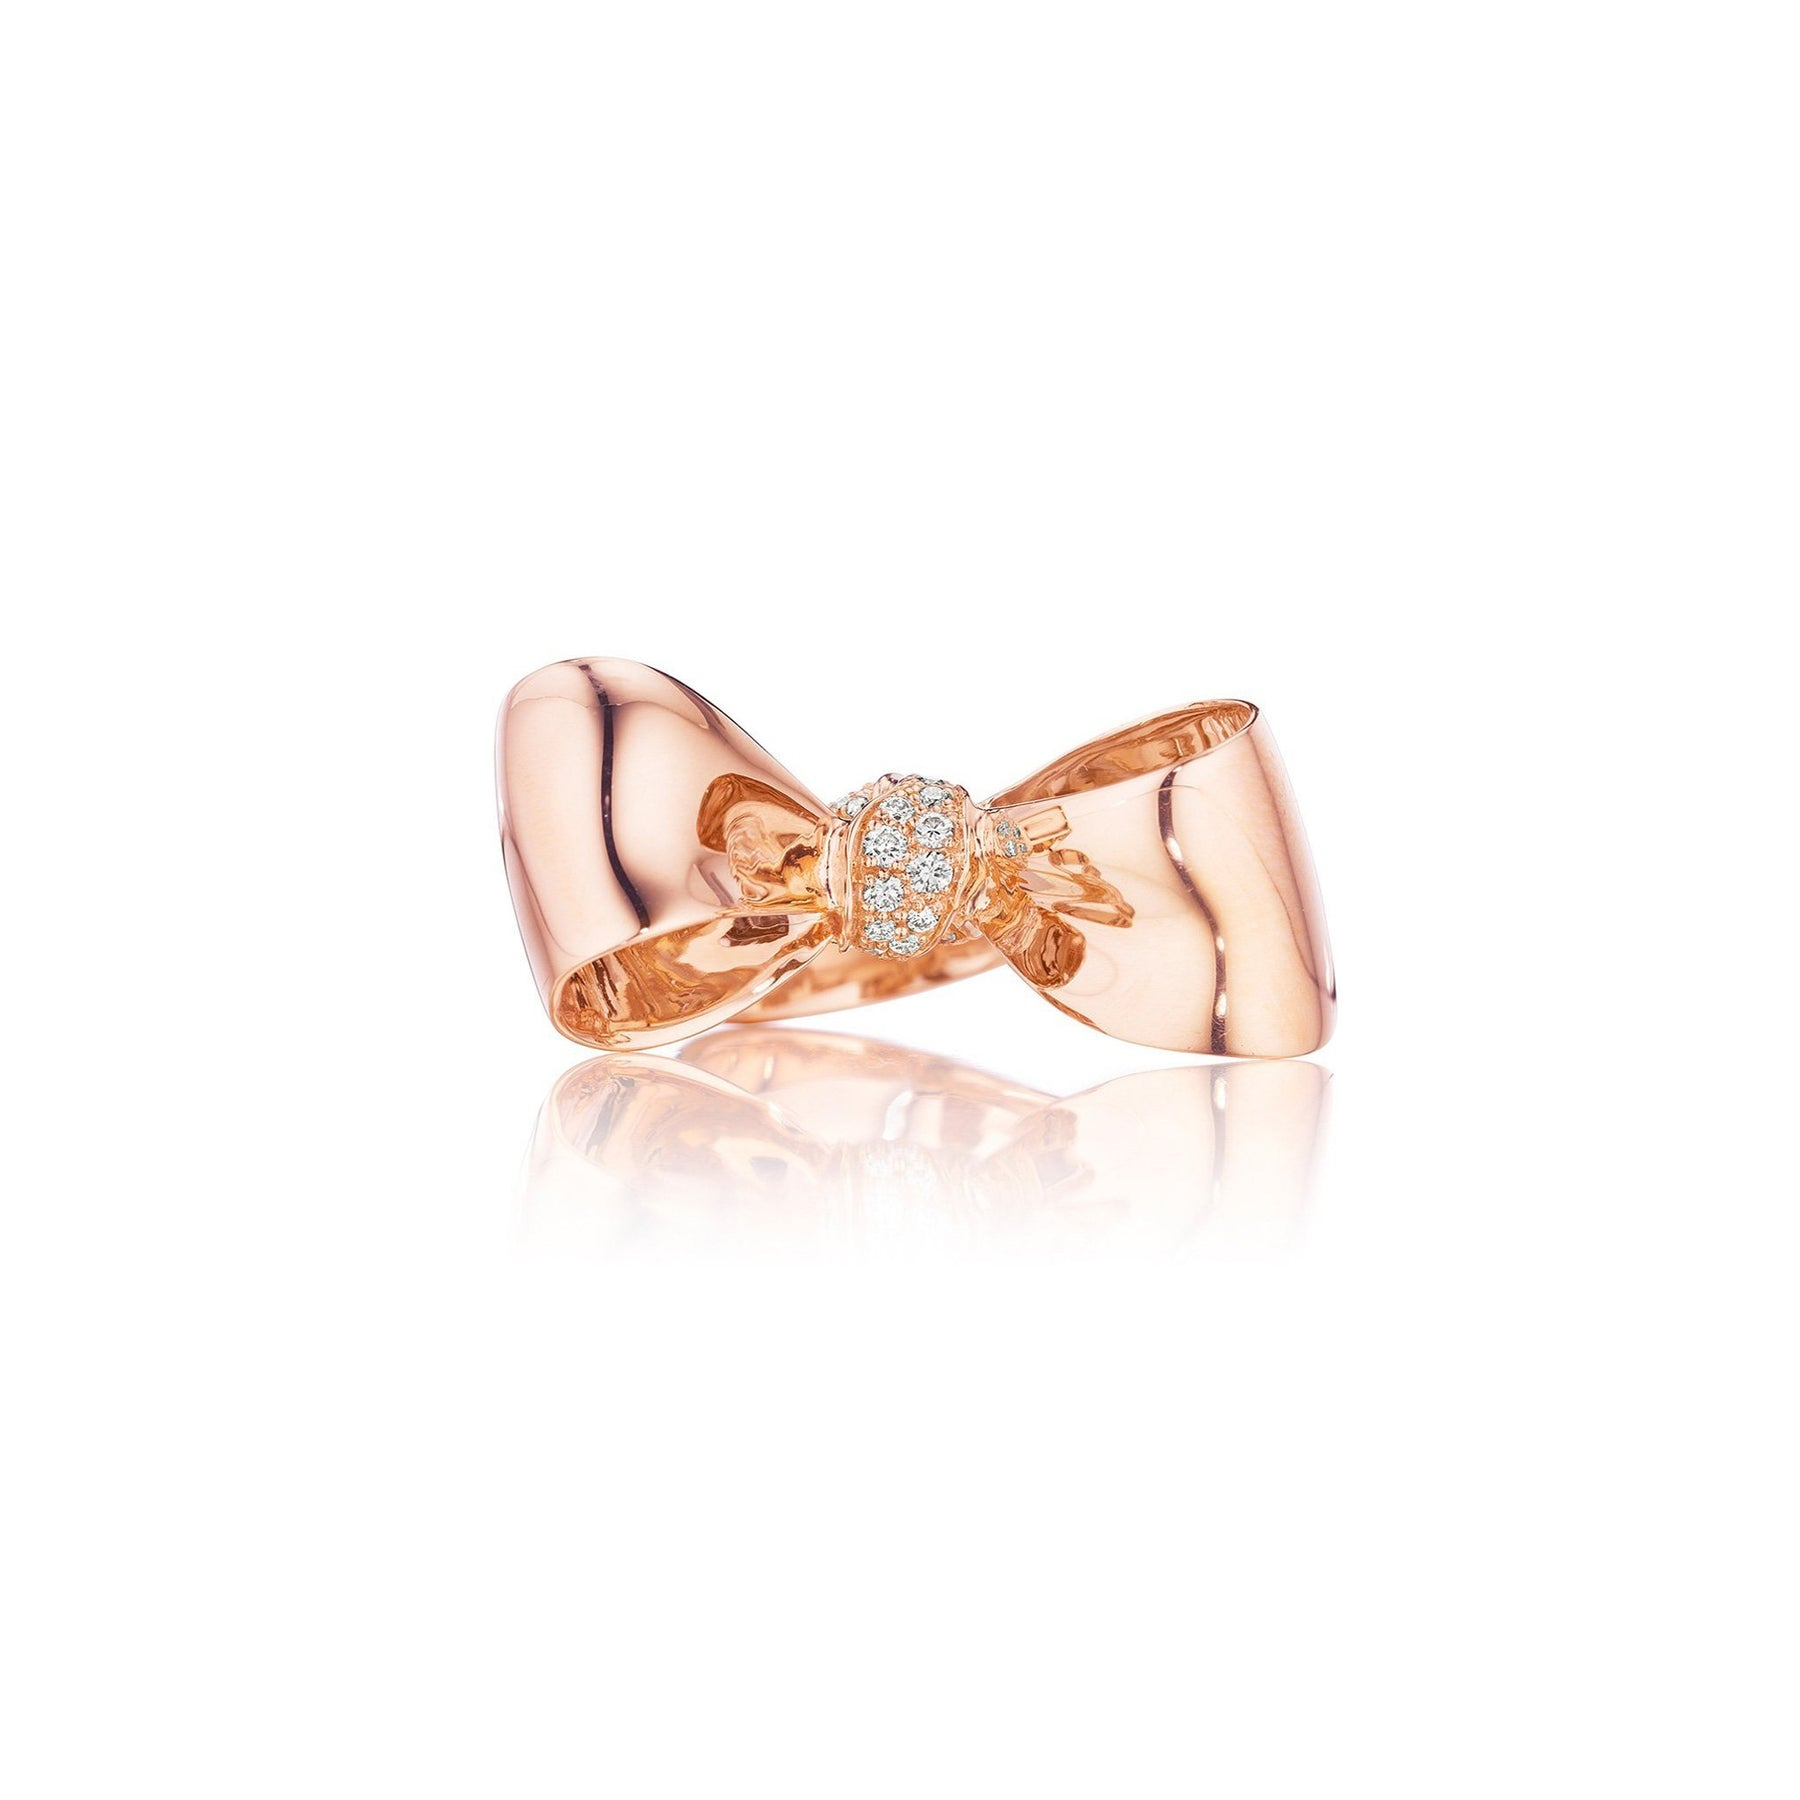 Mimi-So-Bow-Diamond-Knot-Ring-Medium_18k Rose Gold